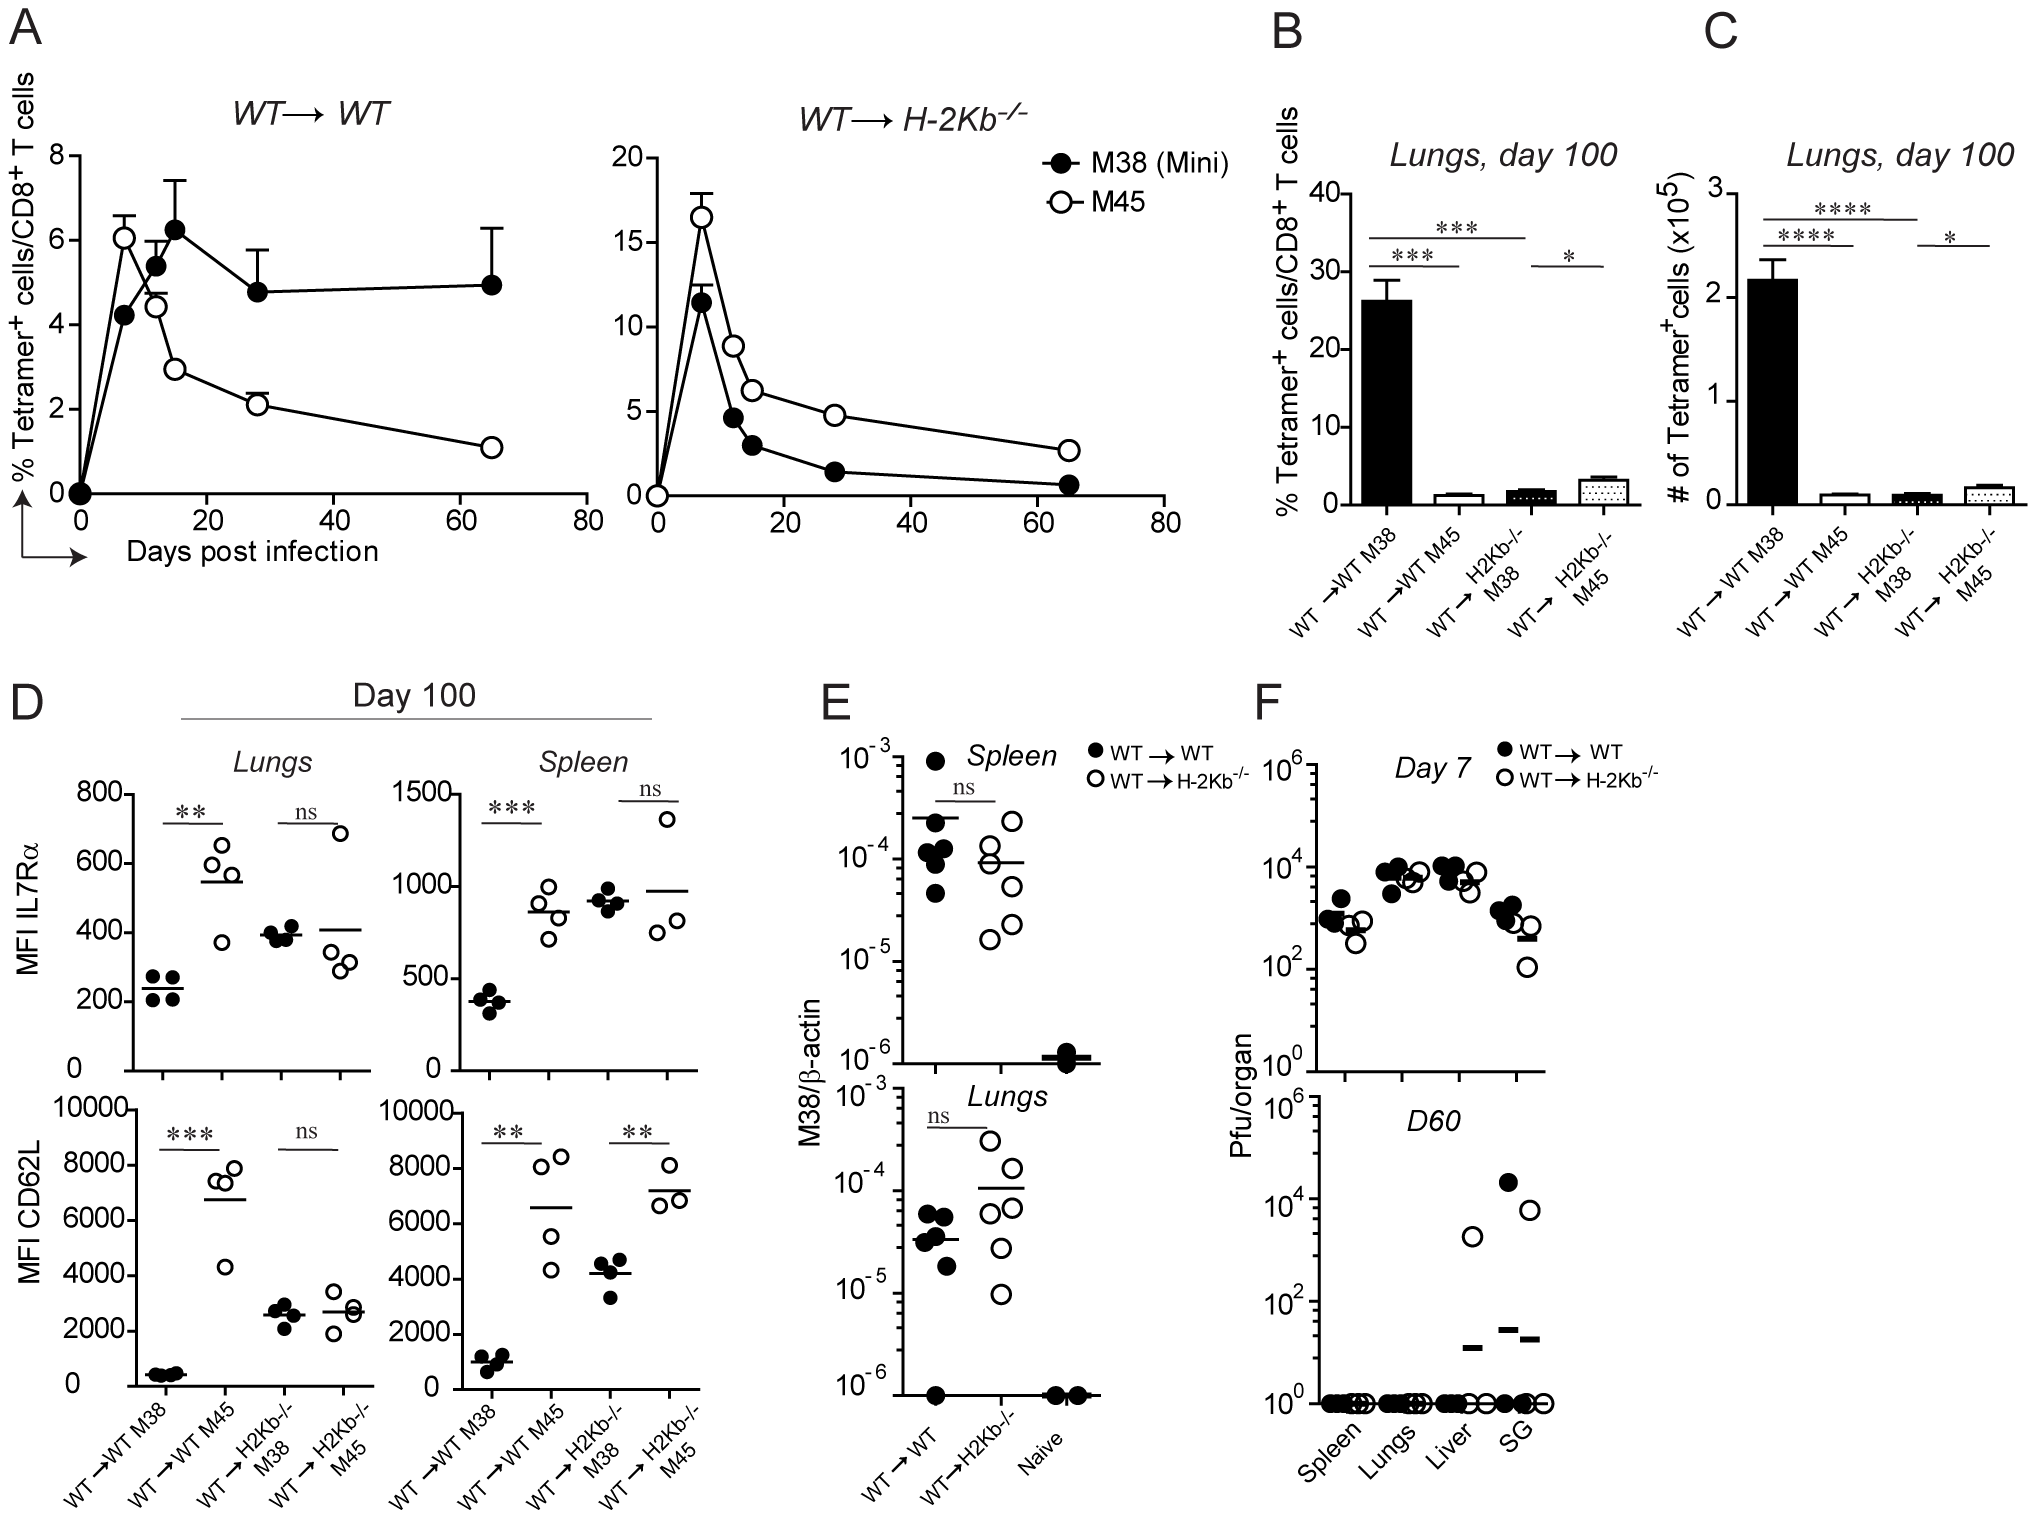 Antigen presentation by non-hematopoietic cells is essential for M38-specific CD8 T cell inflation.